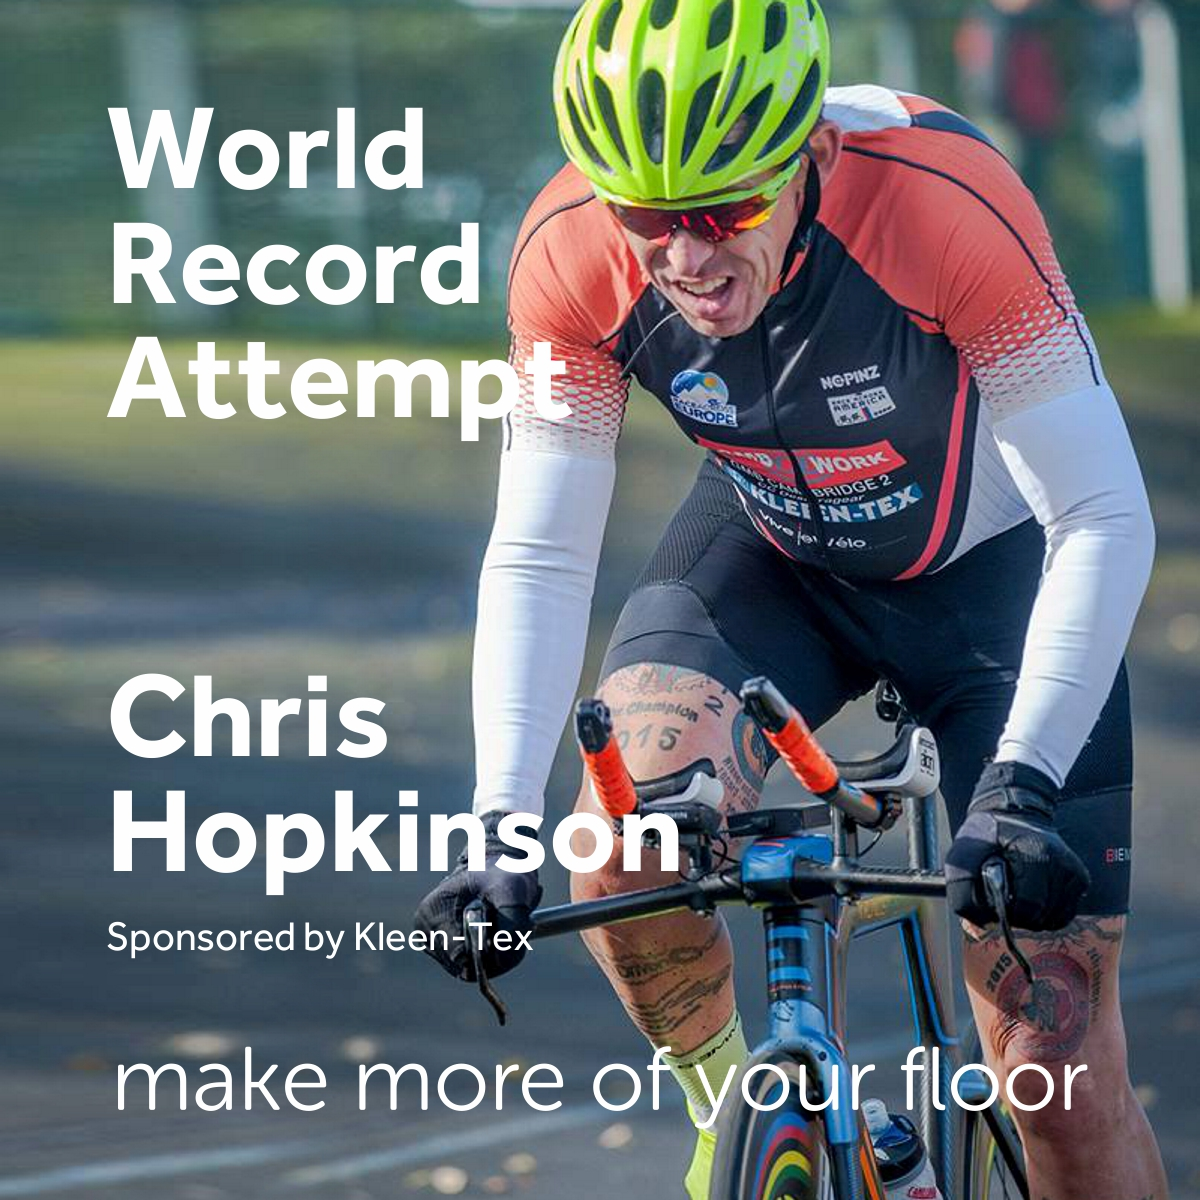 World Record Attempt by Chris Hopkinson